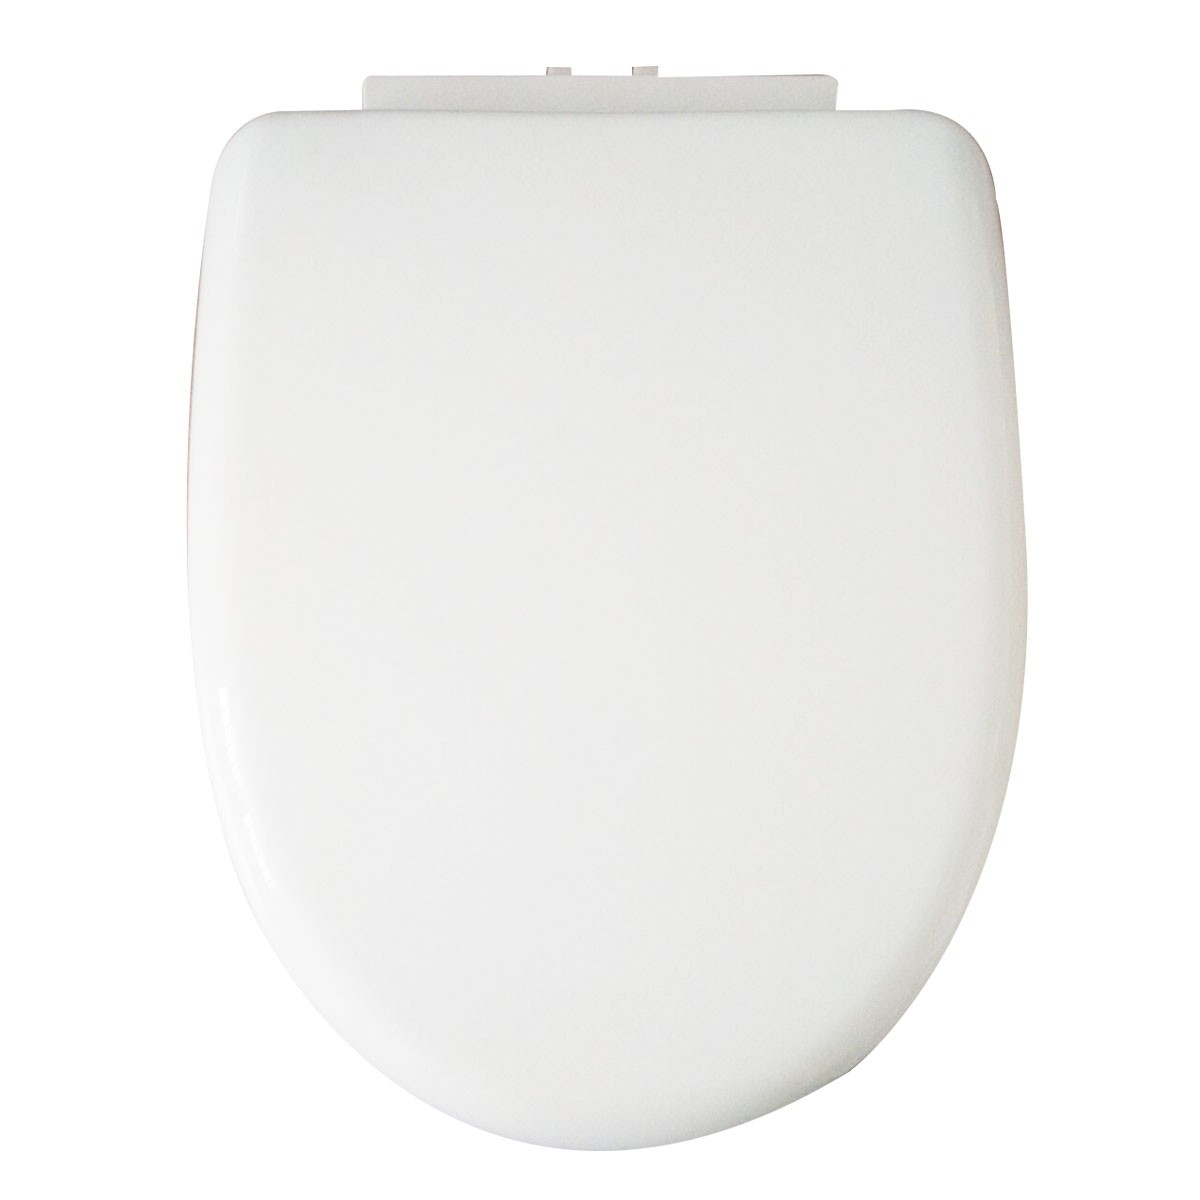 PP White Front Round Soft Close Toilet Seat with Cover (DK-CL-021)